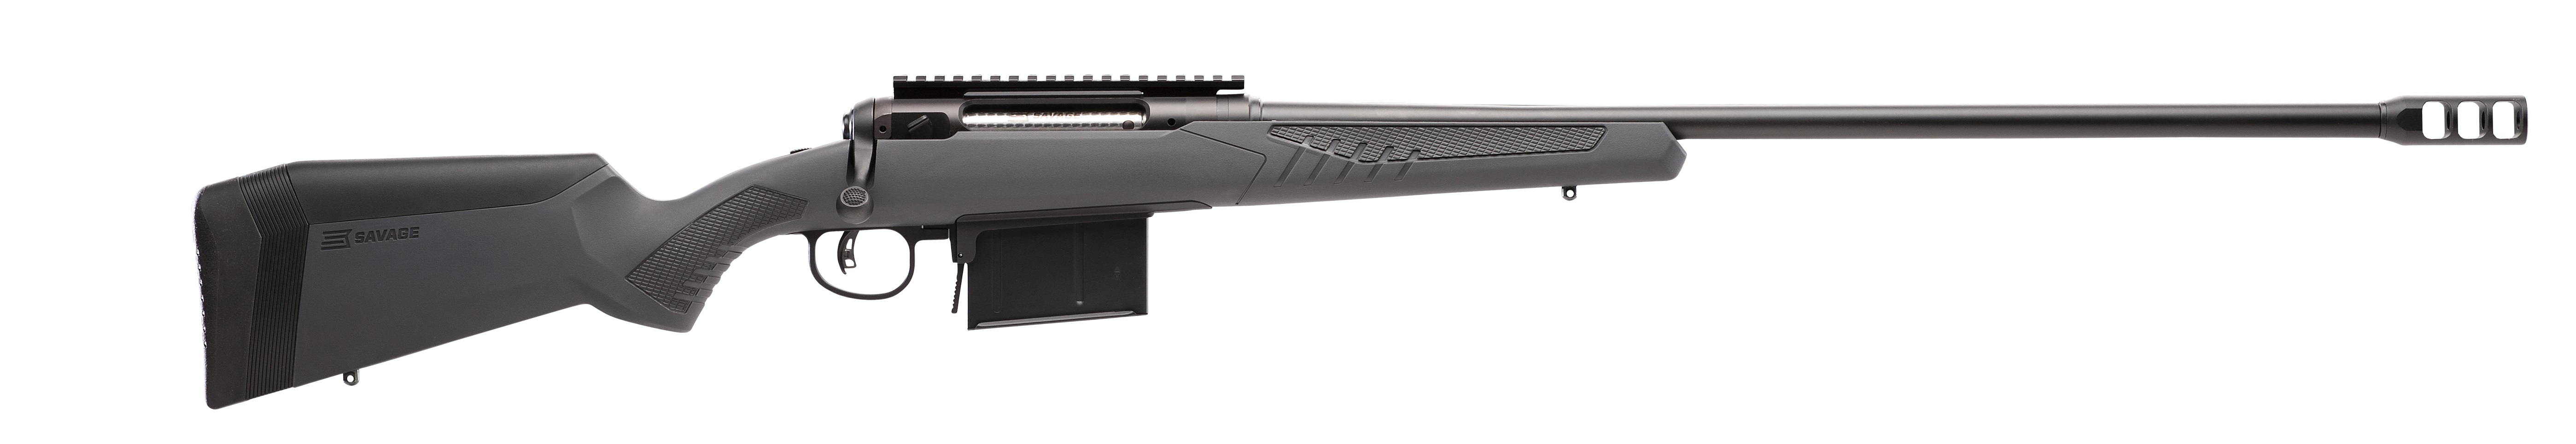 Savage Arms 110 LONG RANGE HUNTER 338 LAPUA